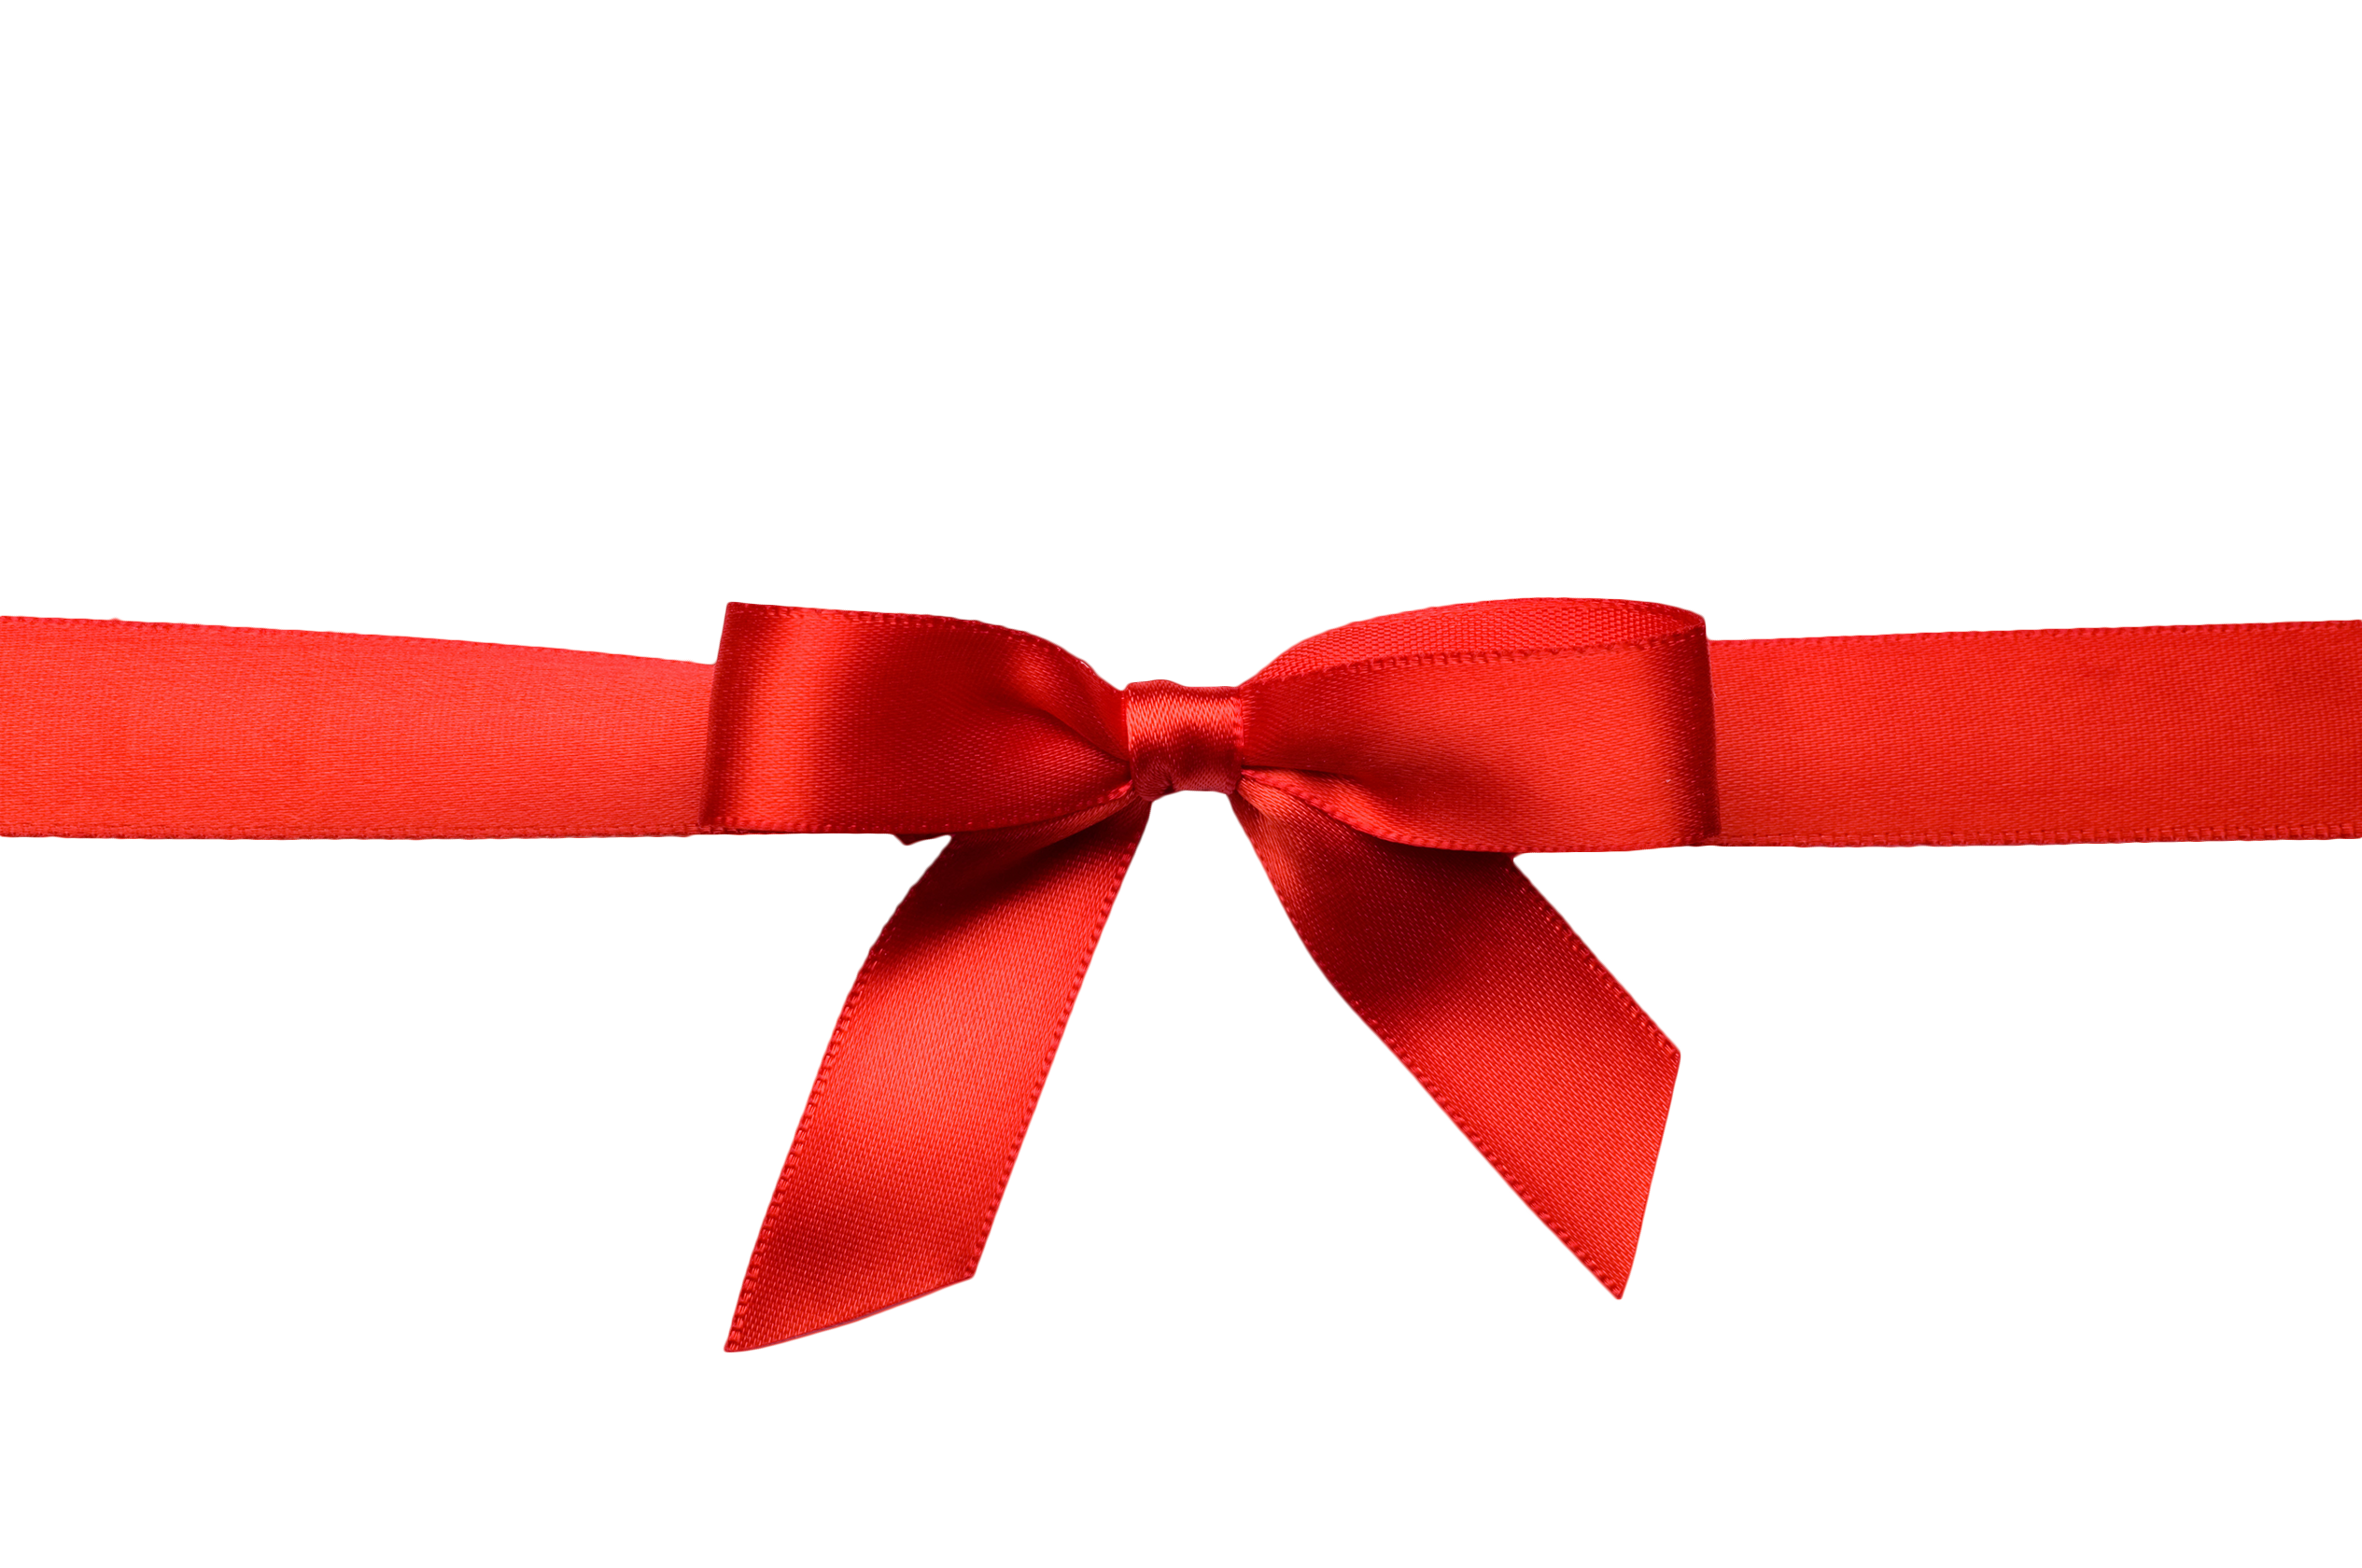 Alf img - Showing > Christmas Red Ribbon Png